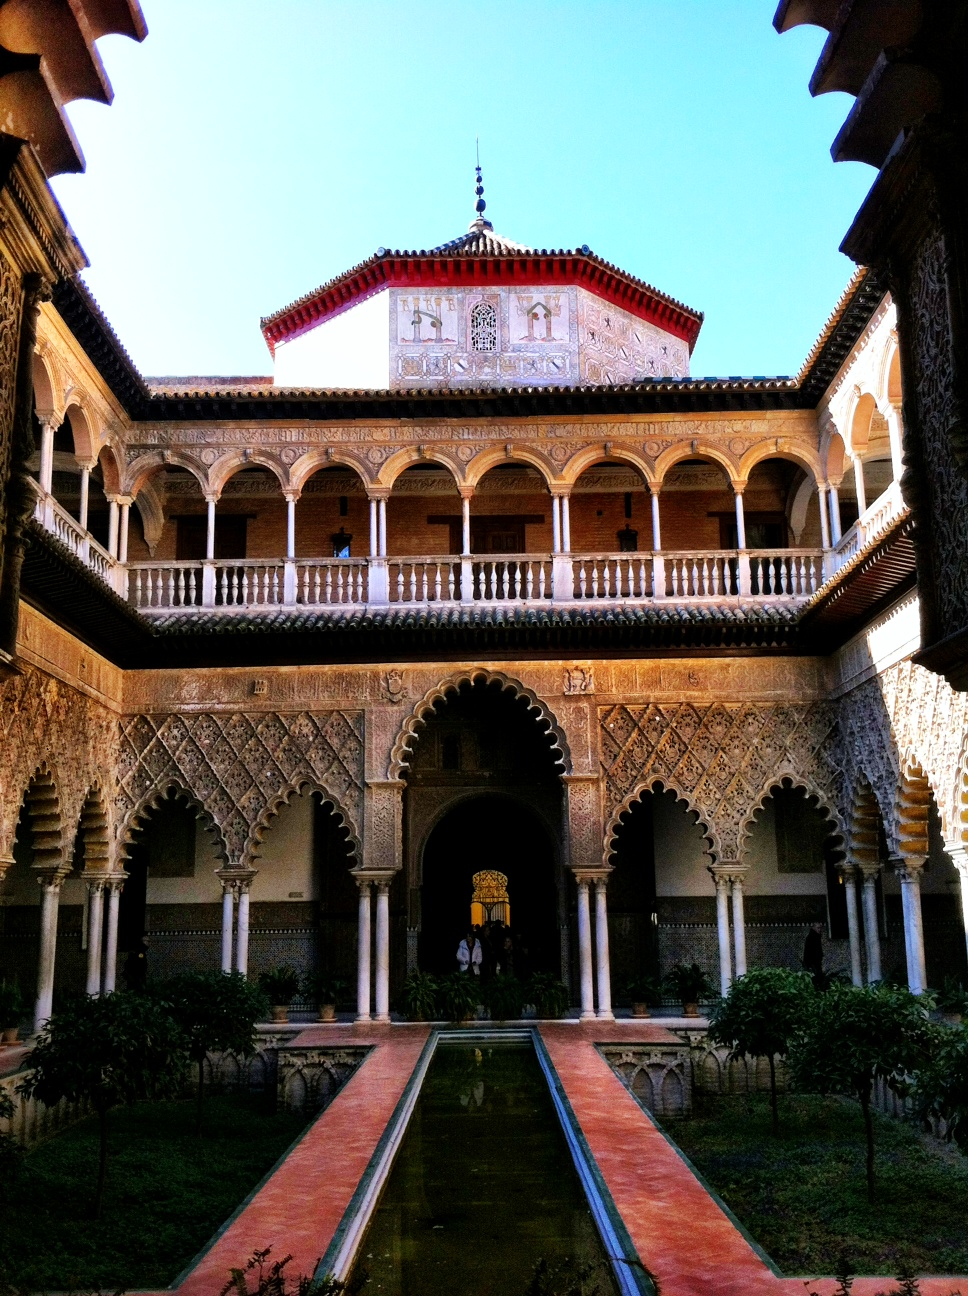 The Beauty of the Palace of The Royal Alcazars of Seville